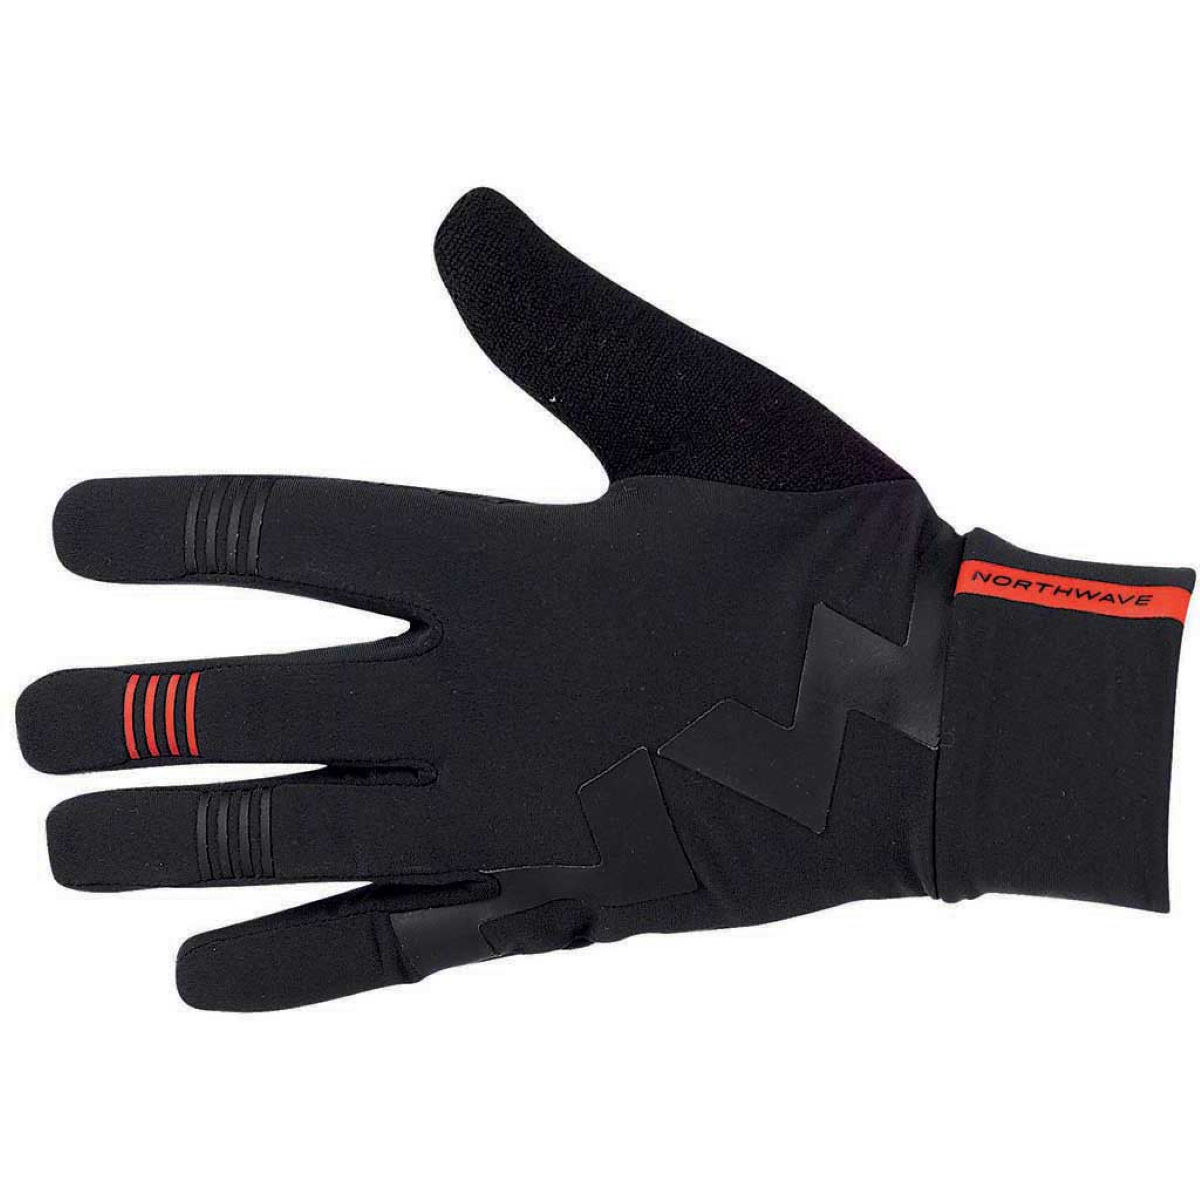 Image of Northwave Contact Touch 2 Full Finger Gloves Gloves